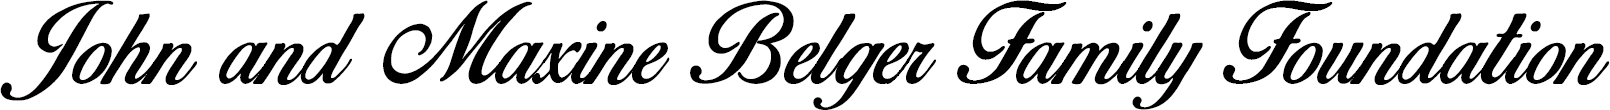 Belger Family Foundation_horiz.jpg